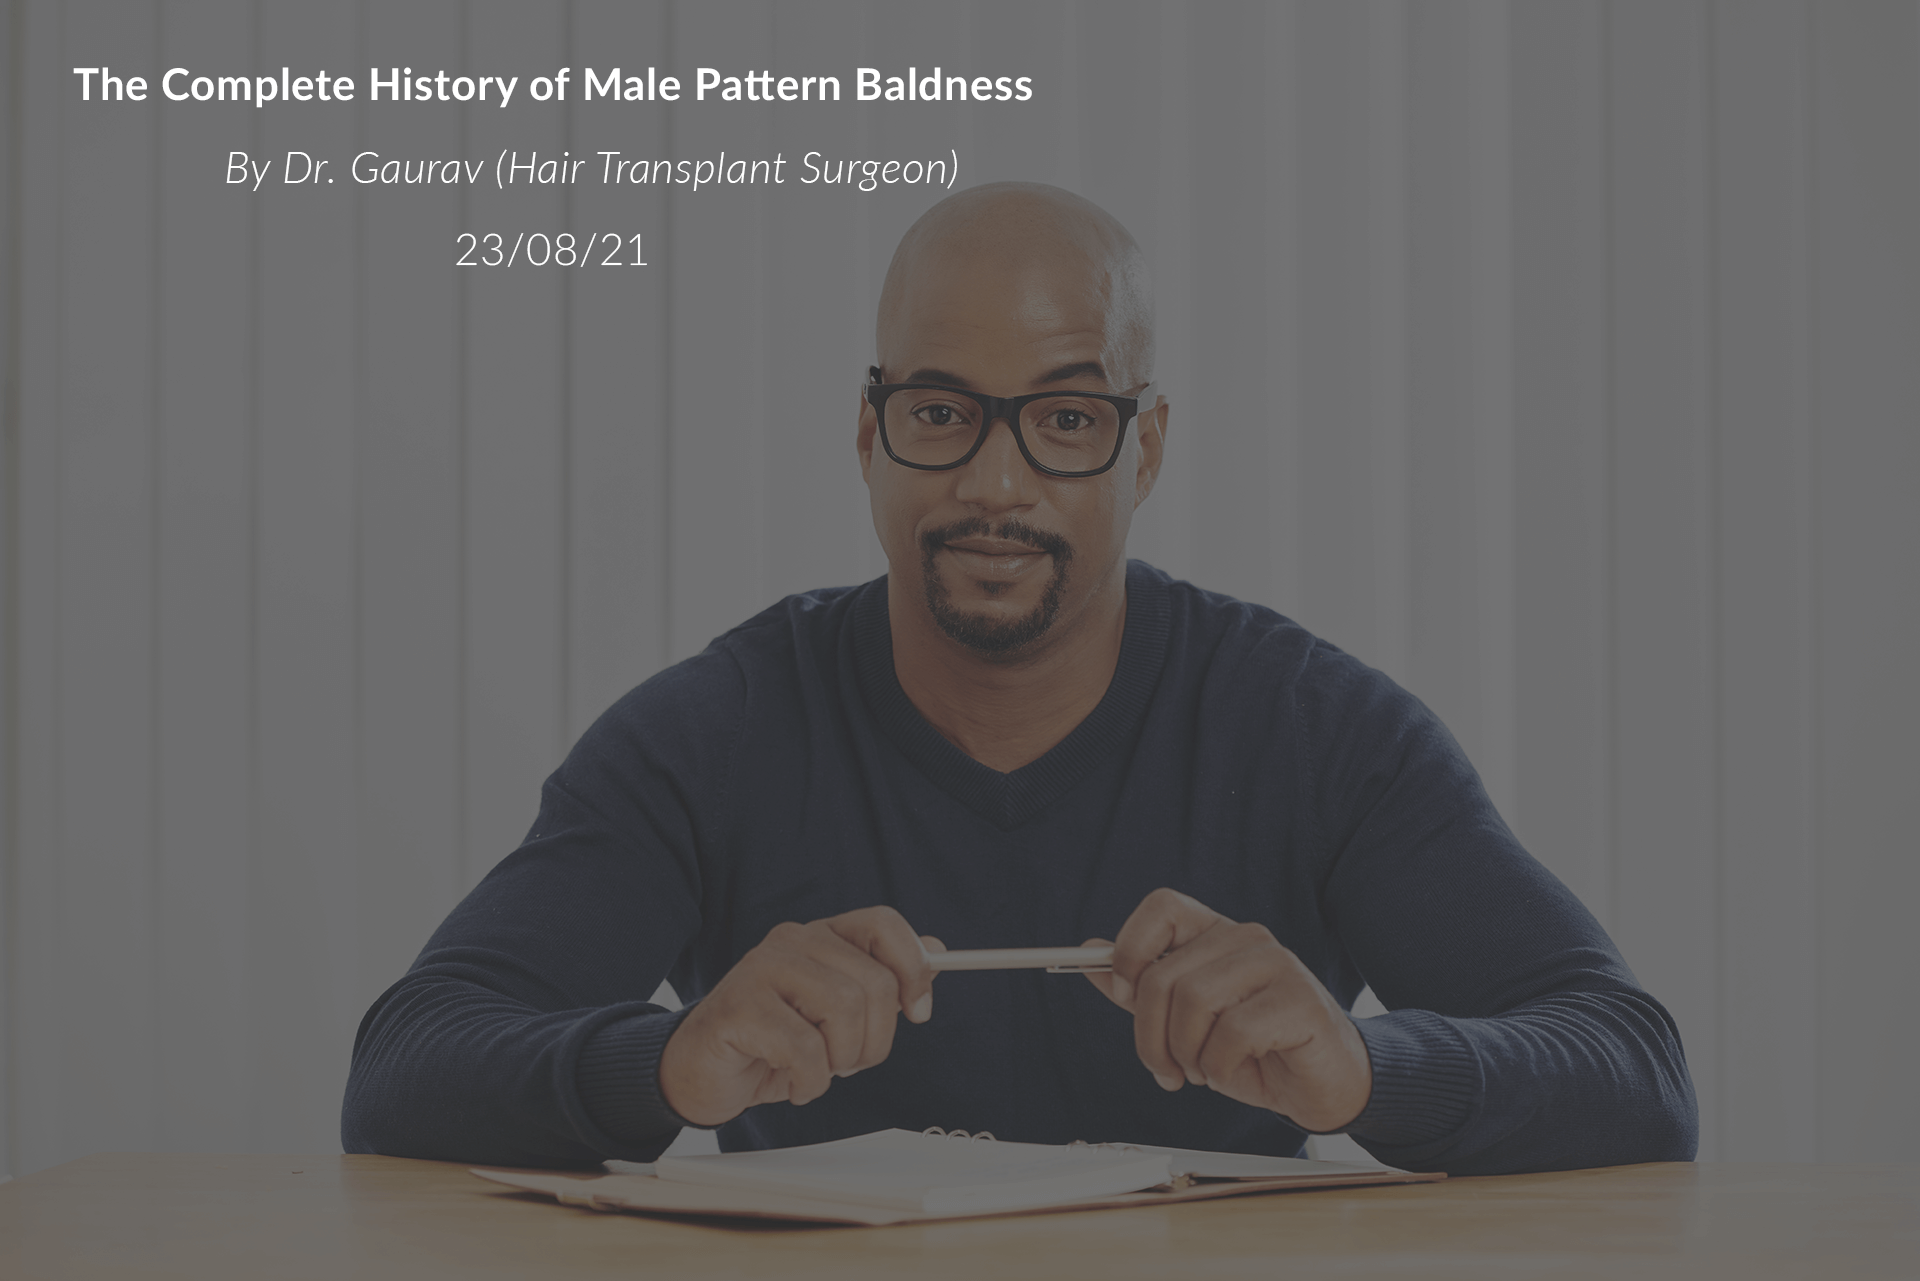 The Complete History of Male Pattern Baldness